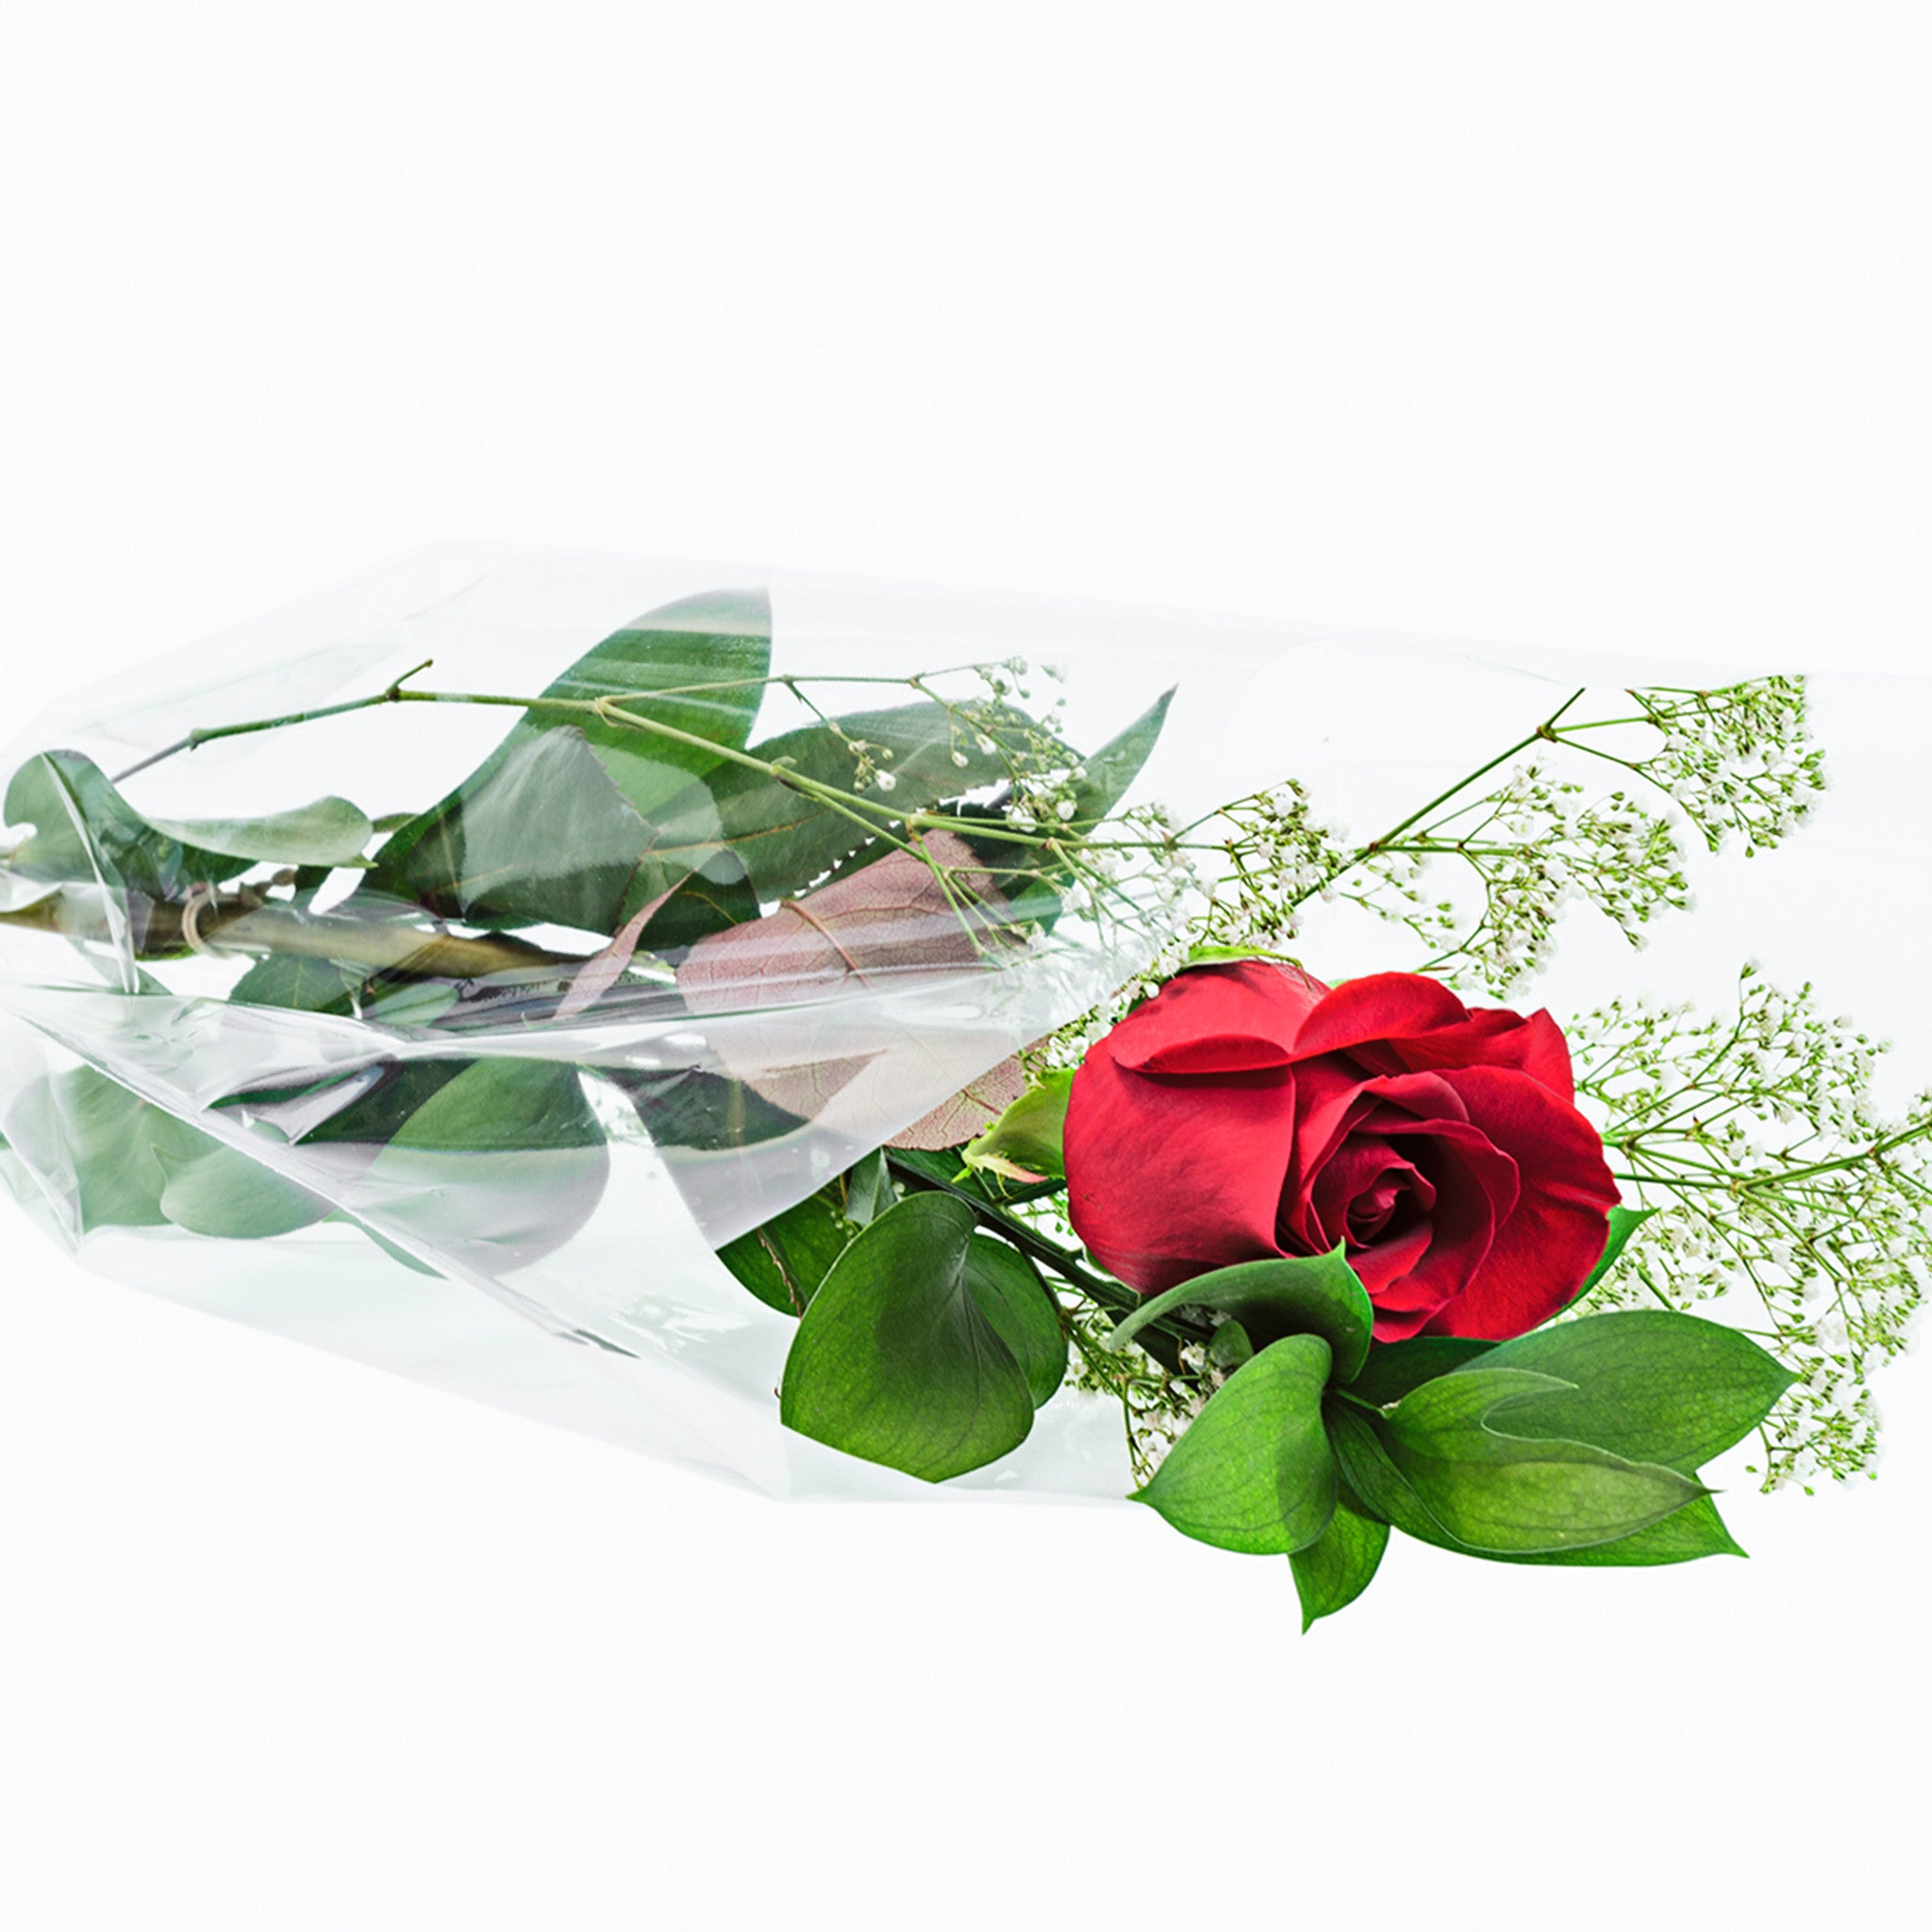 roses delivery, wholesale roses, quality flowers, roses for business, fundraising ideas, fresh rose bouquets, wholesale roses bouquet, roses